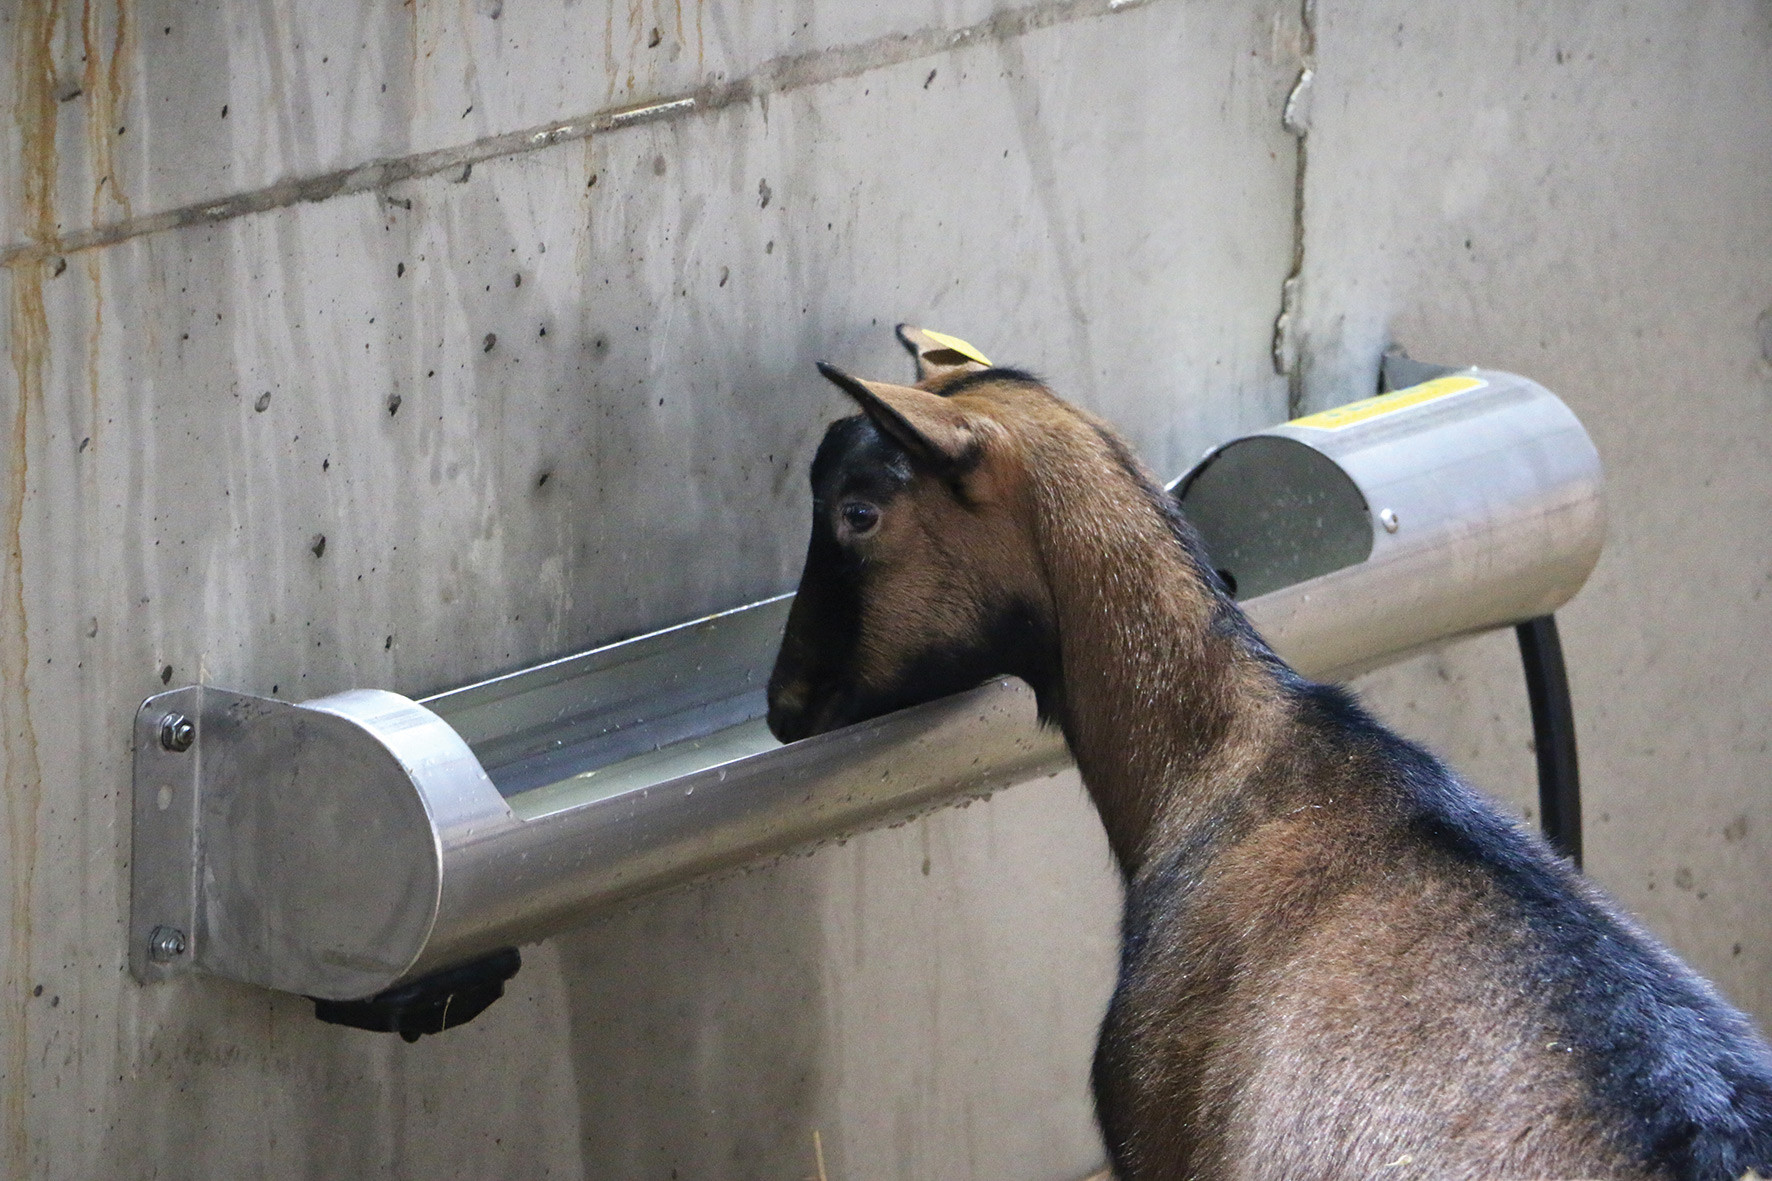 OVITUBE 210 Stainless steel trough for sheep and goats